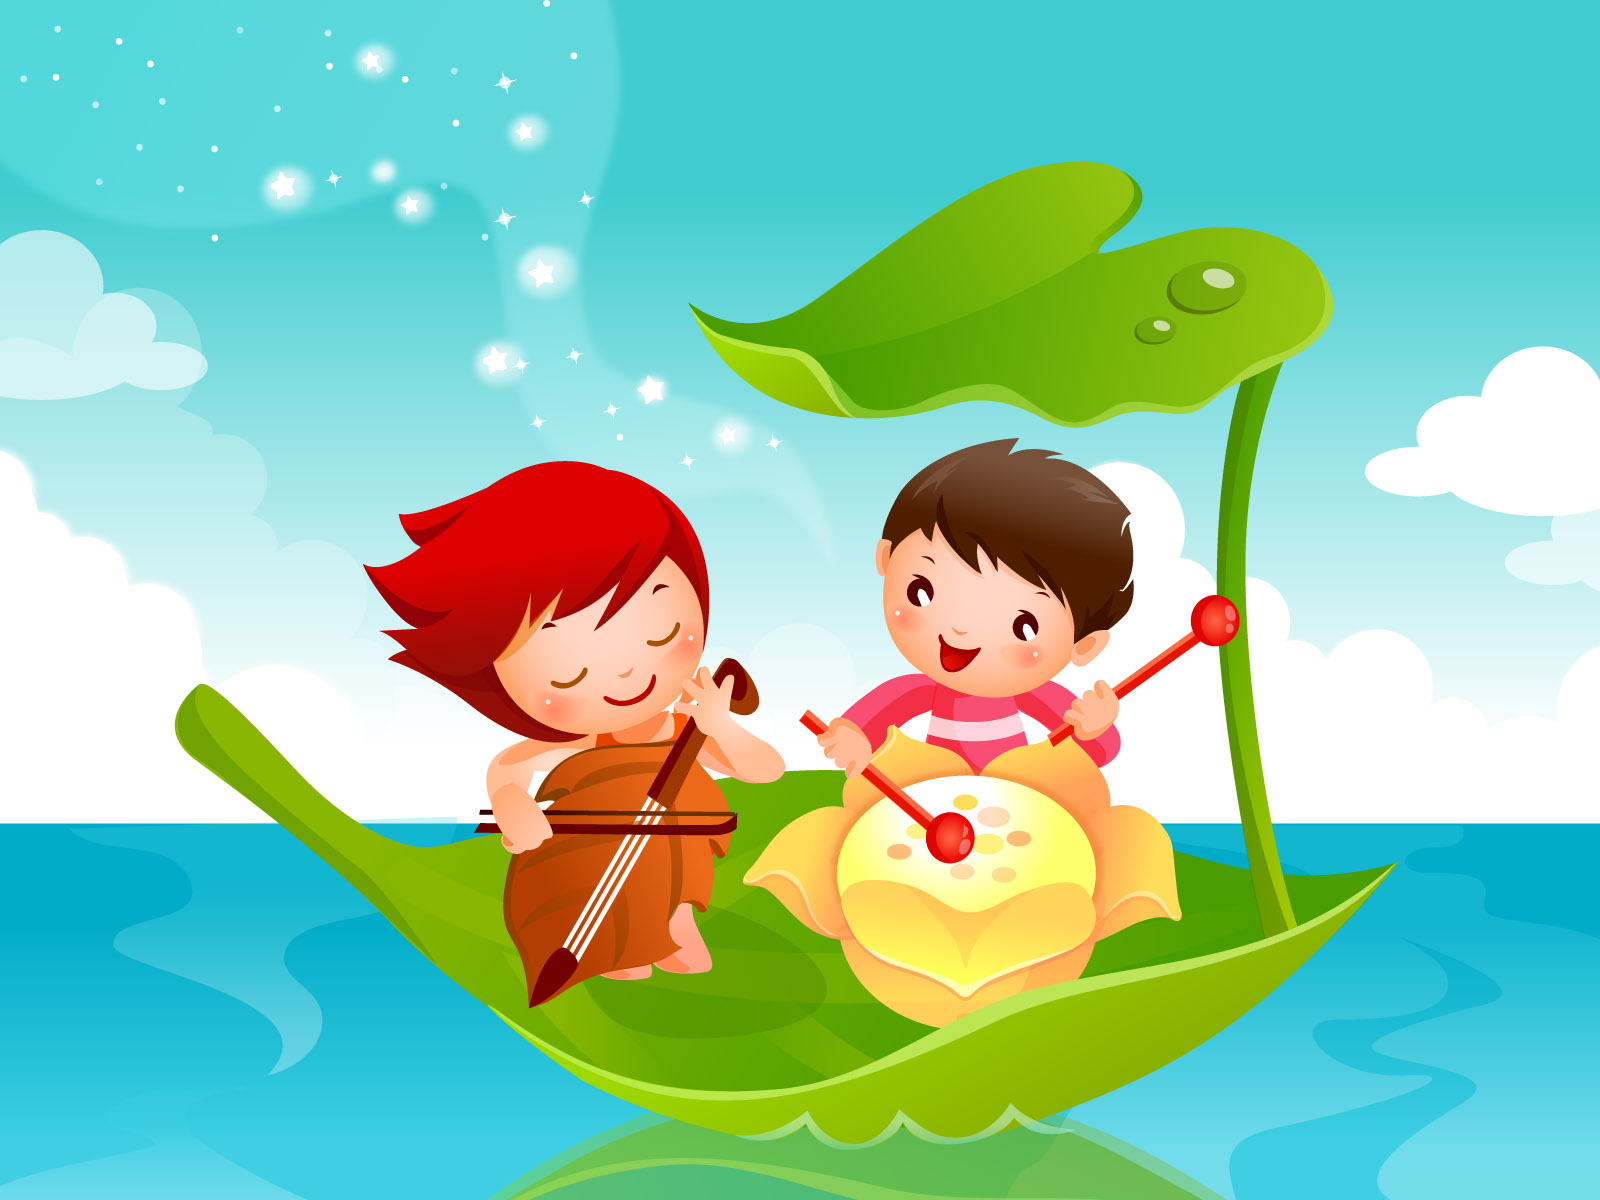 cartoon childhood dream 21527 fairy tales illustration cartoon